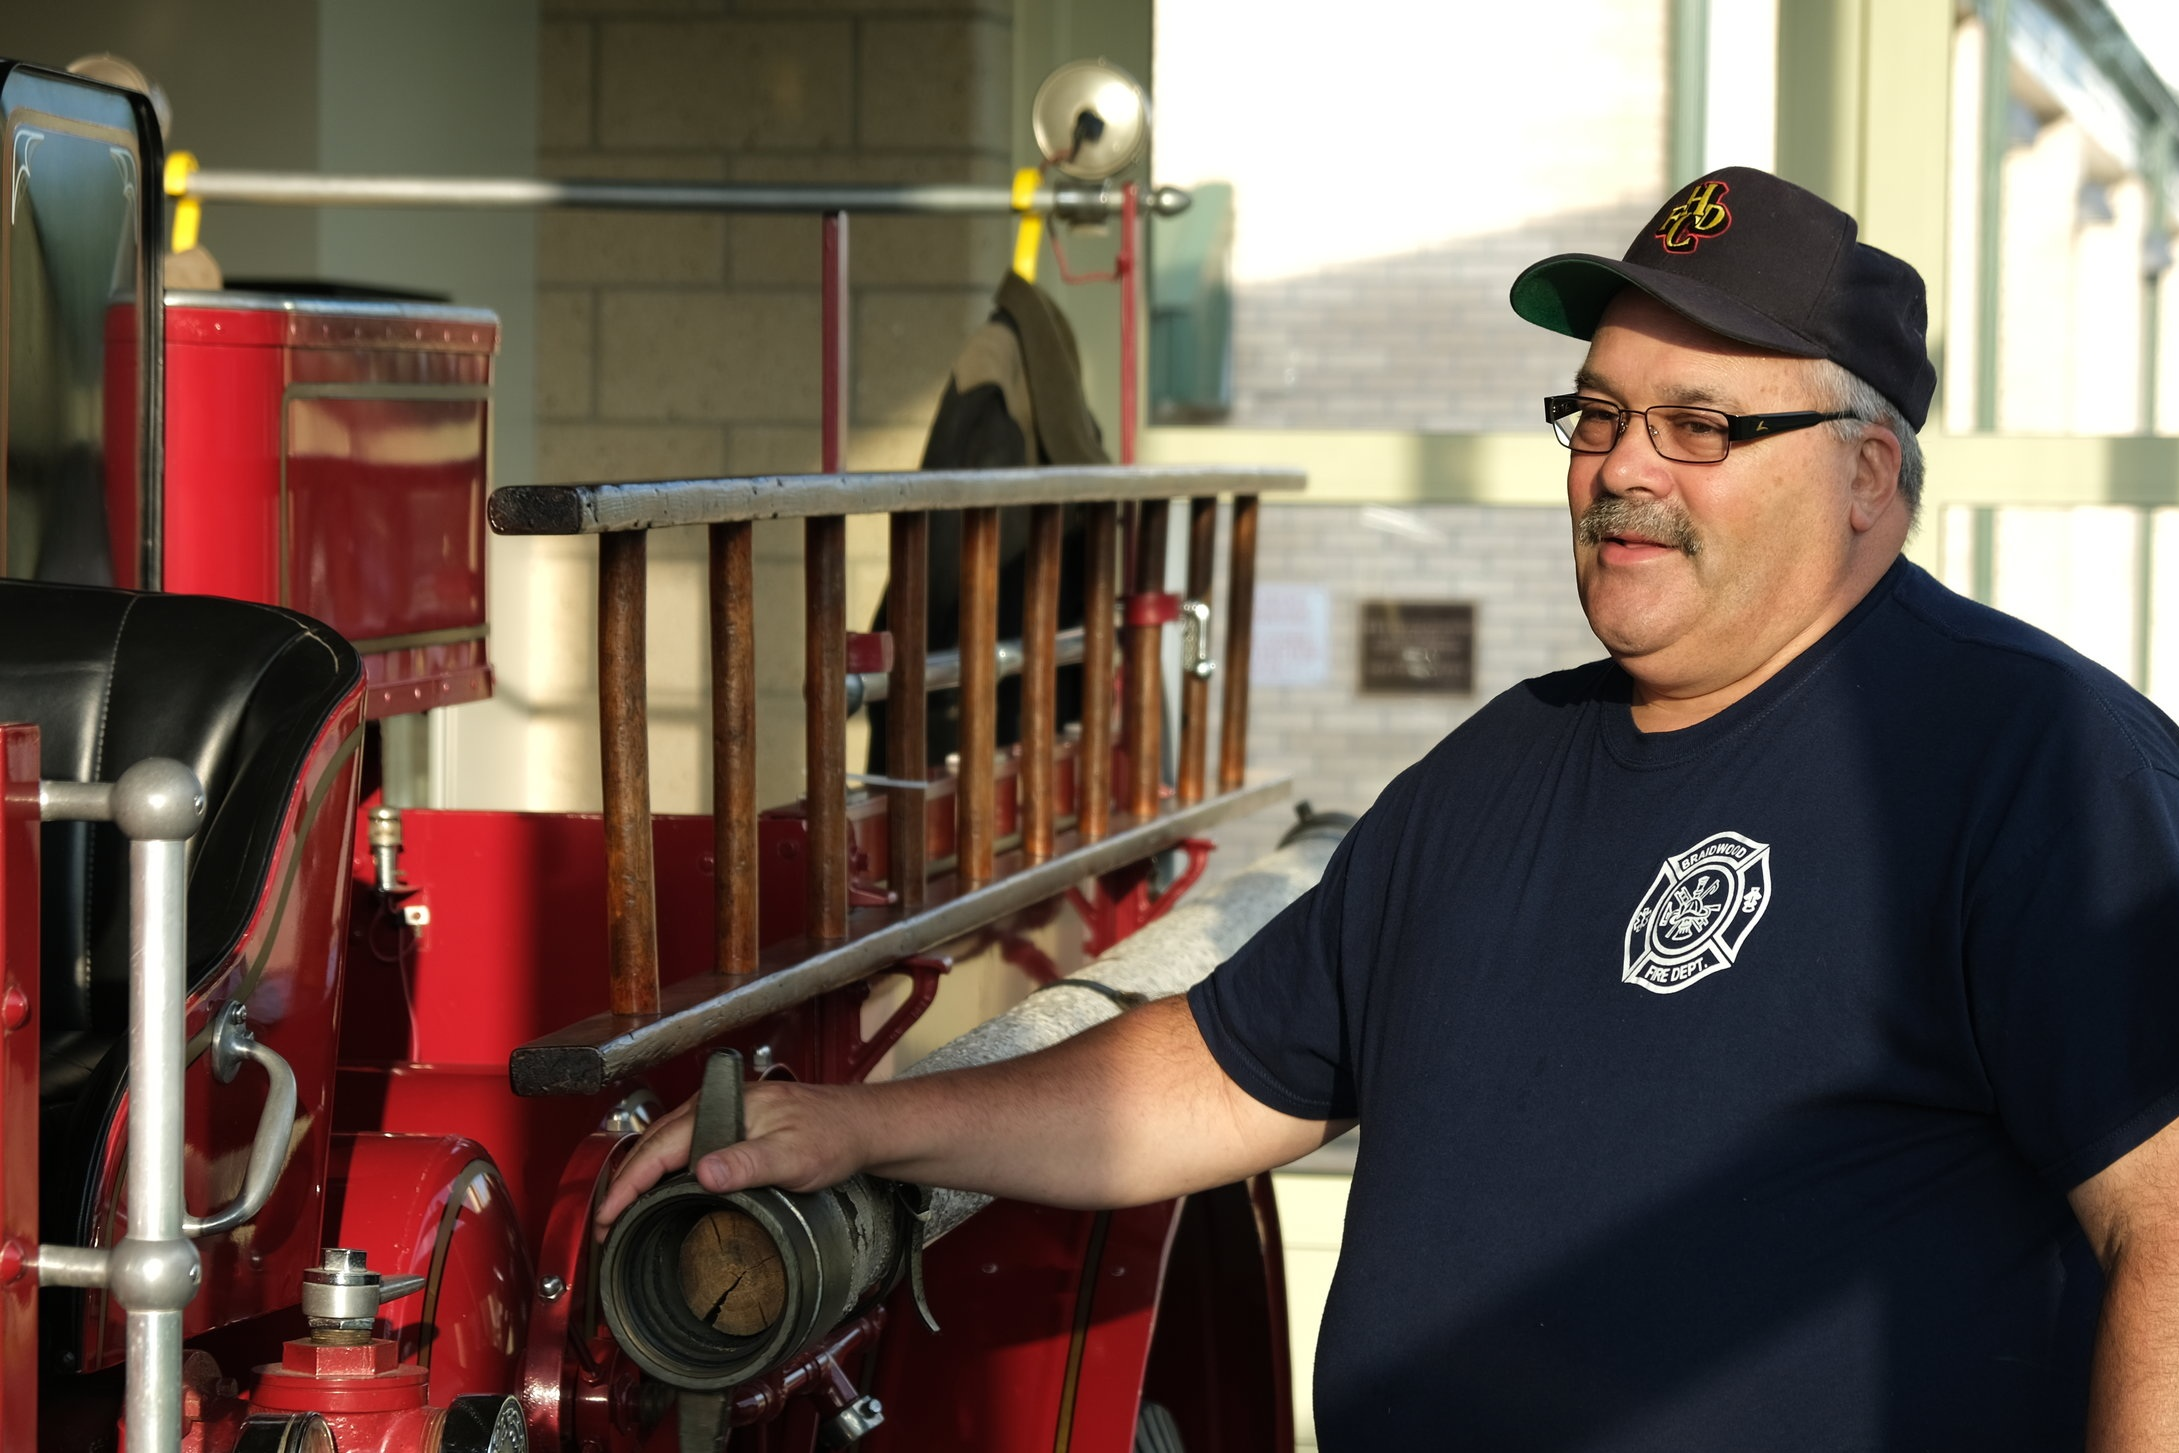 One last tour of the fire trucks with Mike